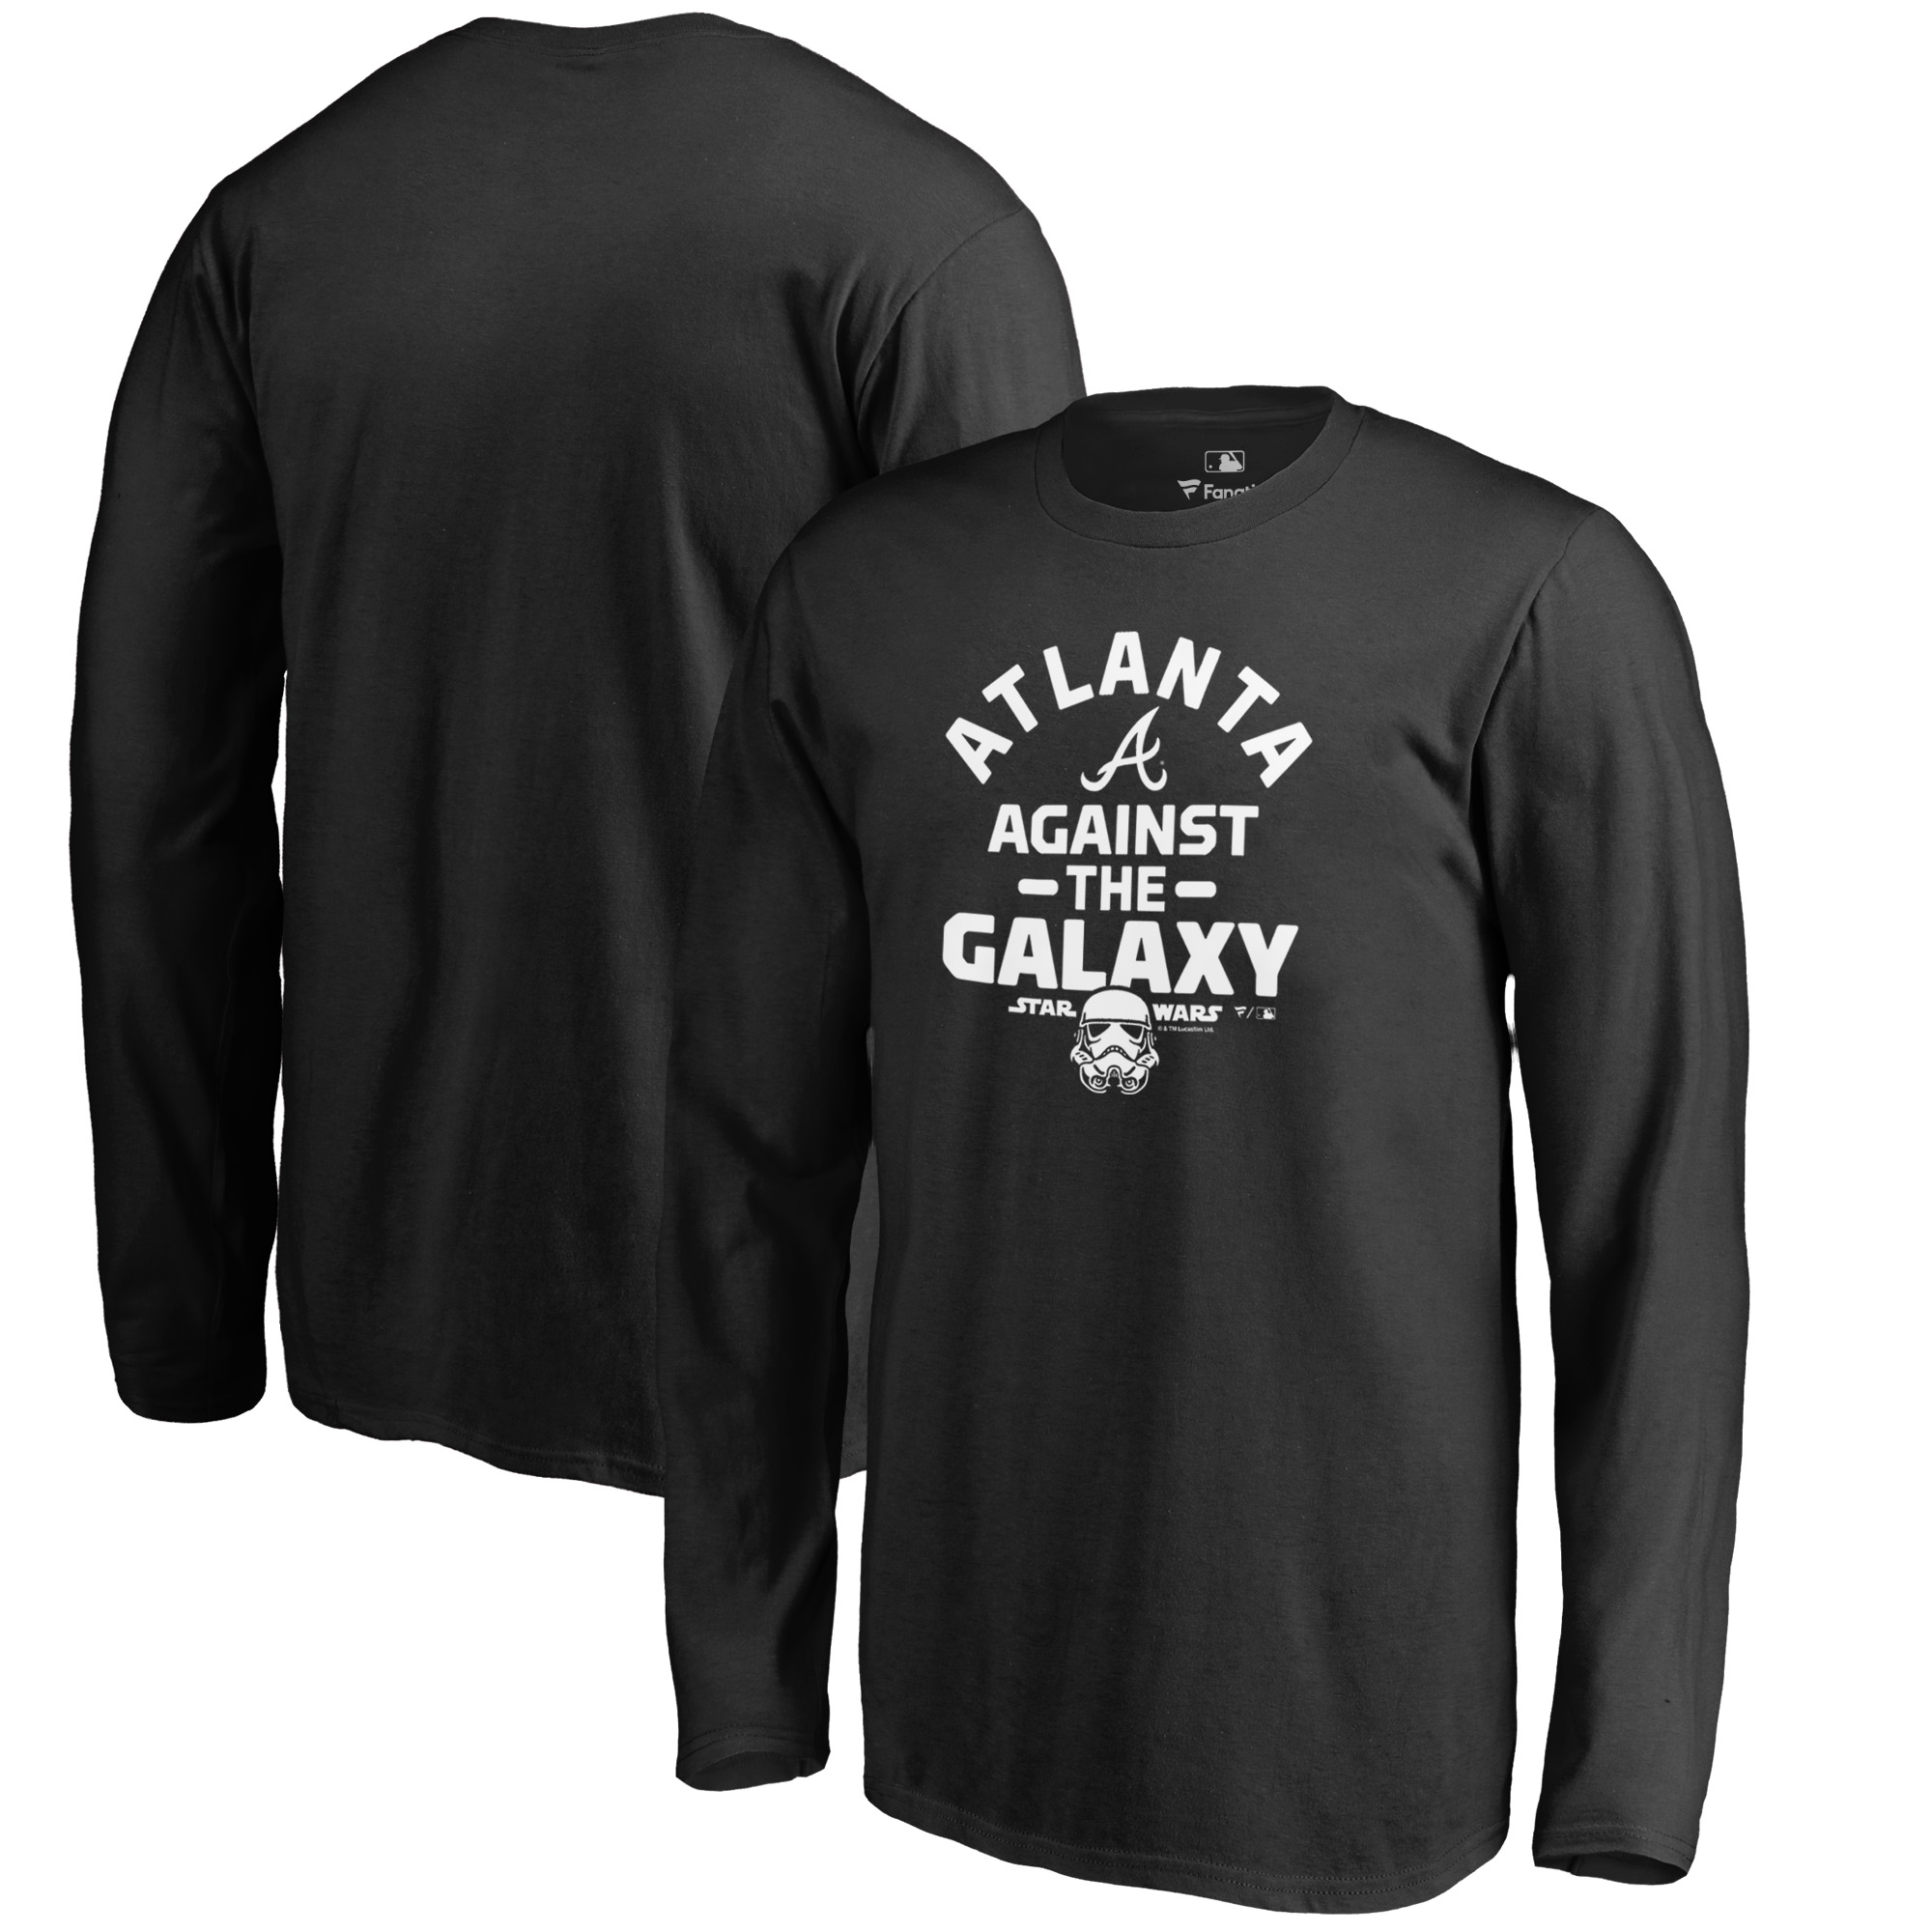 Atlanta Braves Fanatics Branded Youth MLB Star Wars Against The Galaxy Long Sleeve T-Shirt - Black